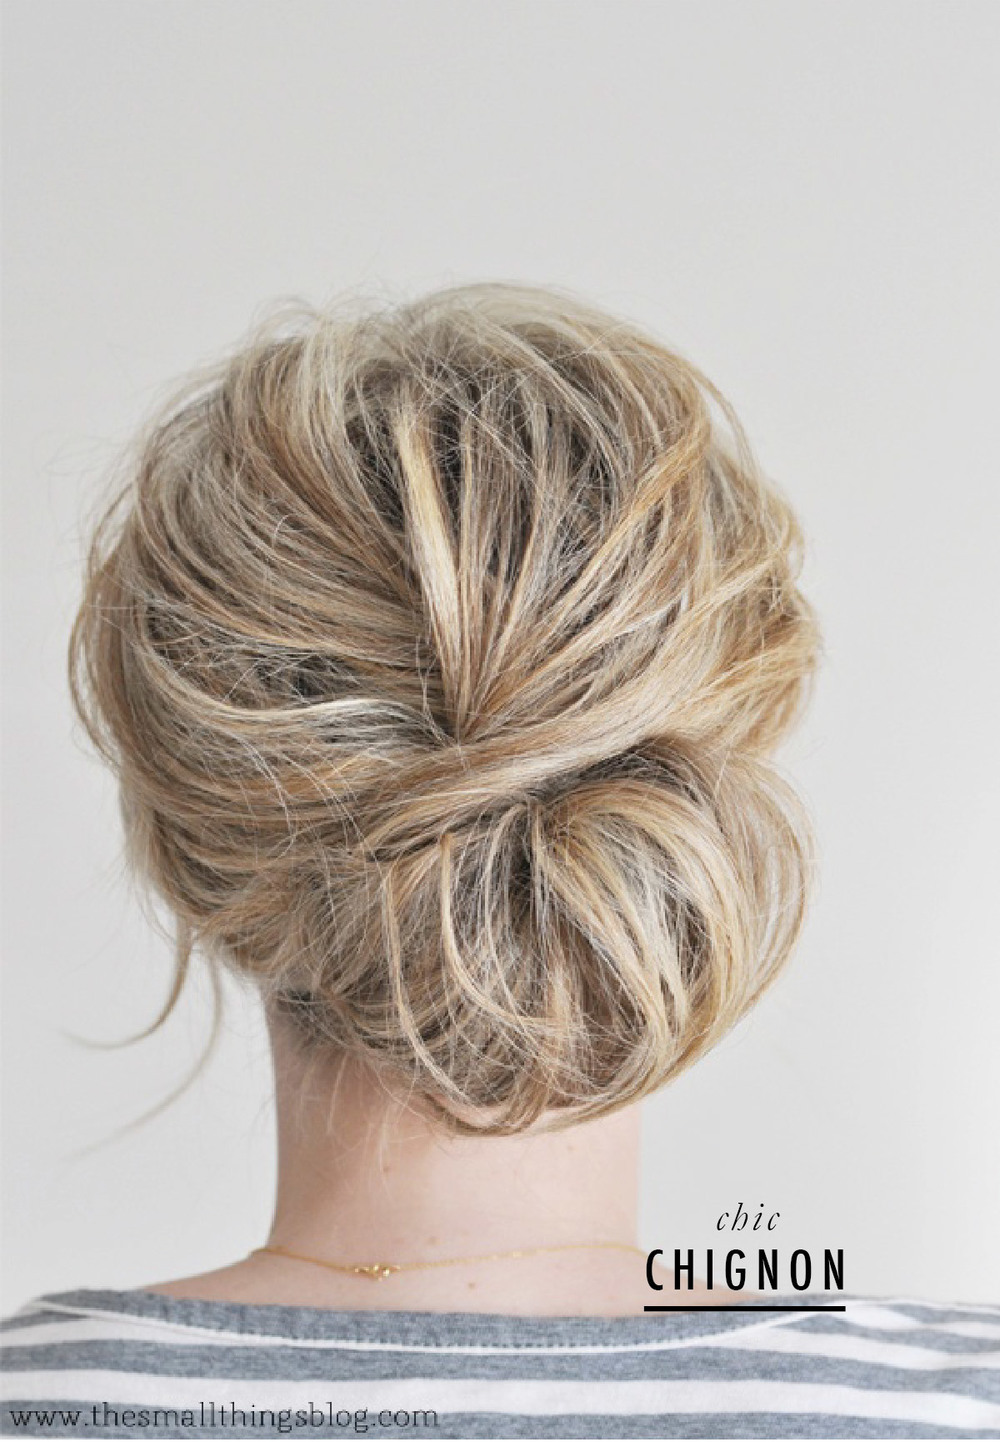 Hair Ideas | That's Pretty Ace